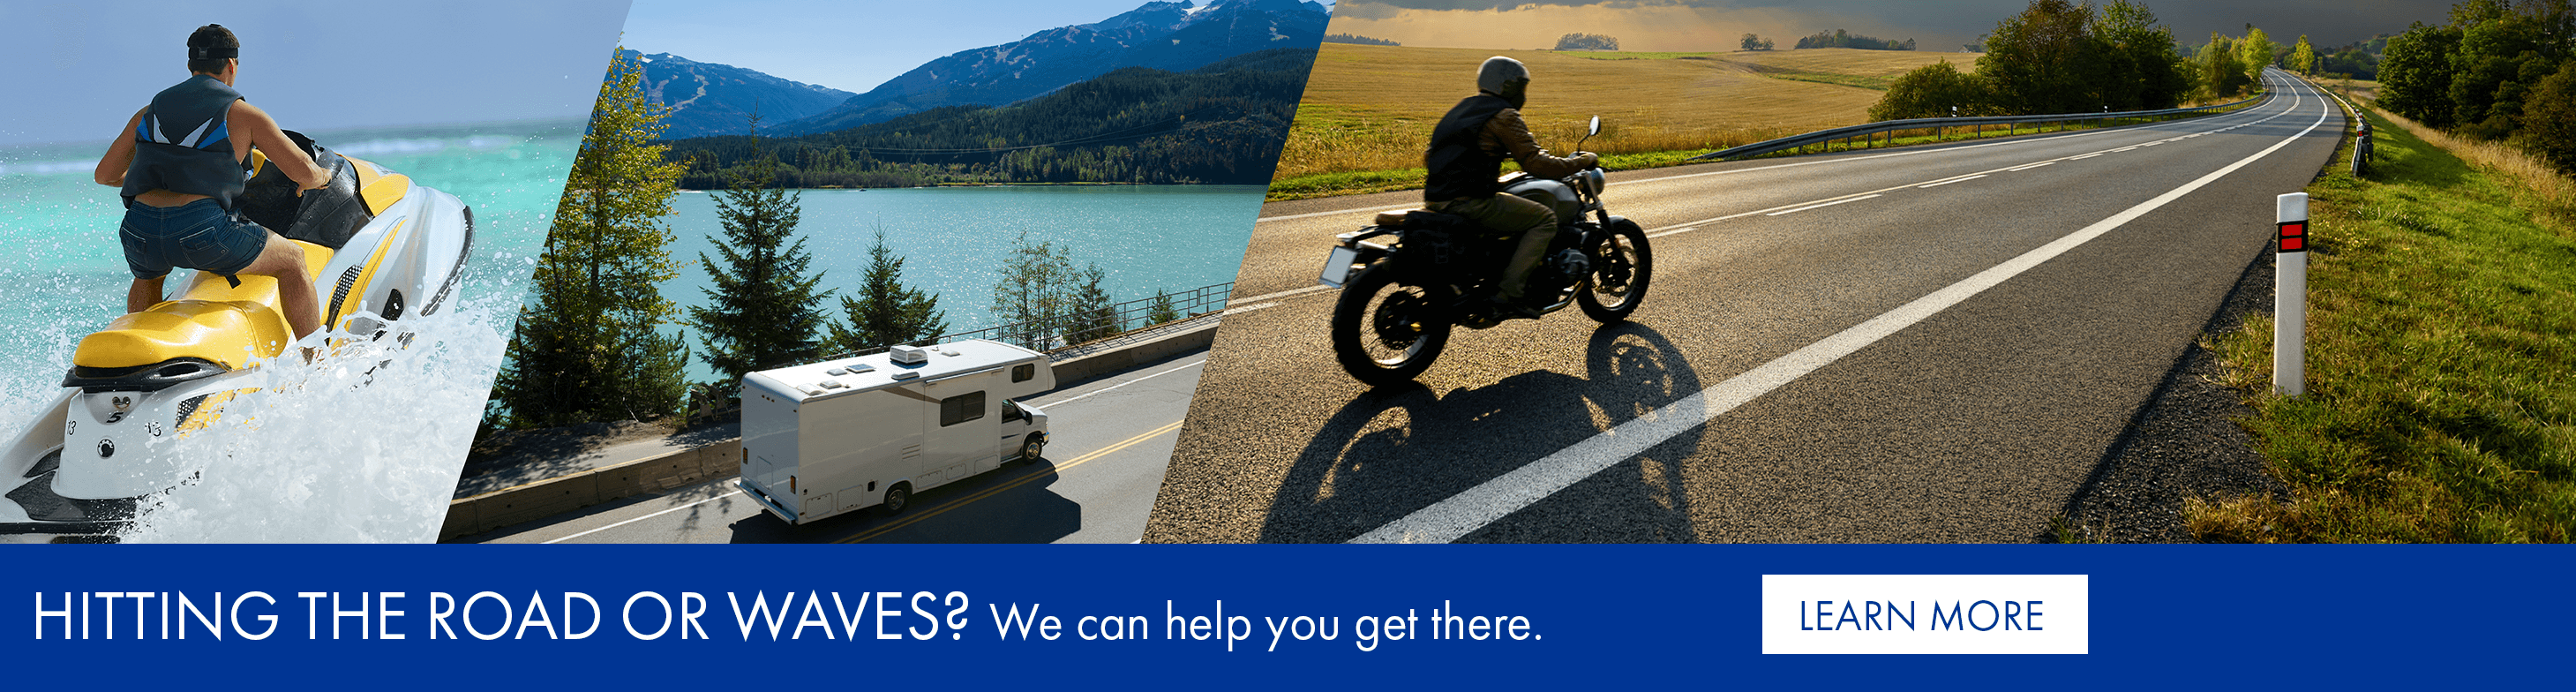 Hitting the road or waves? We can help you get there.